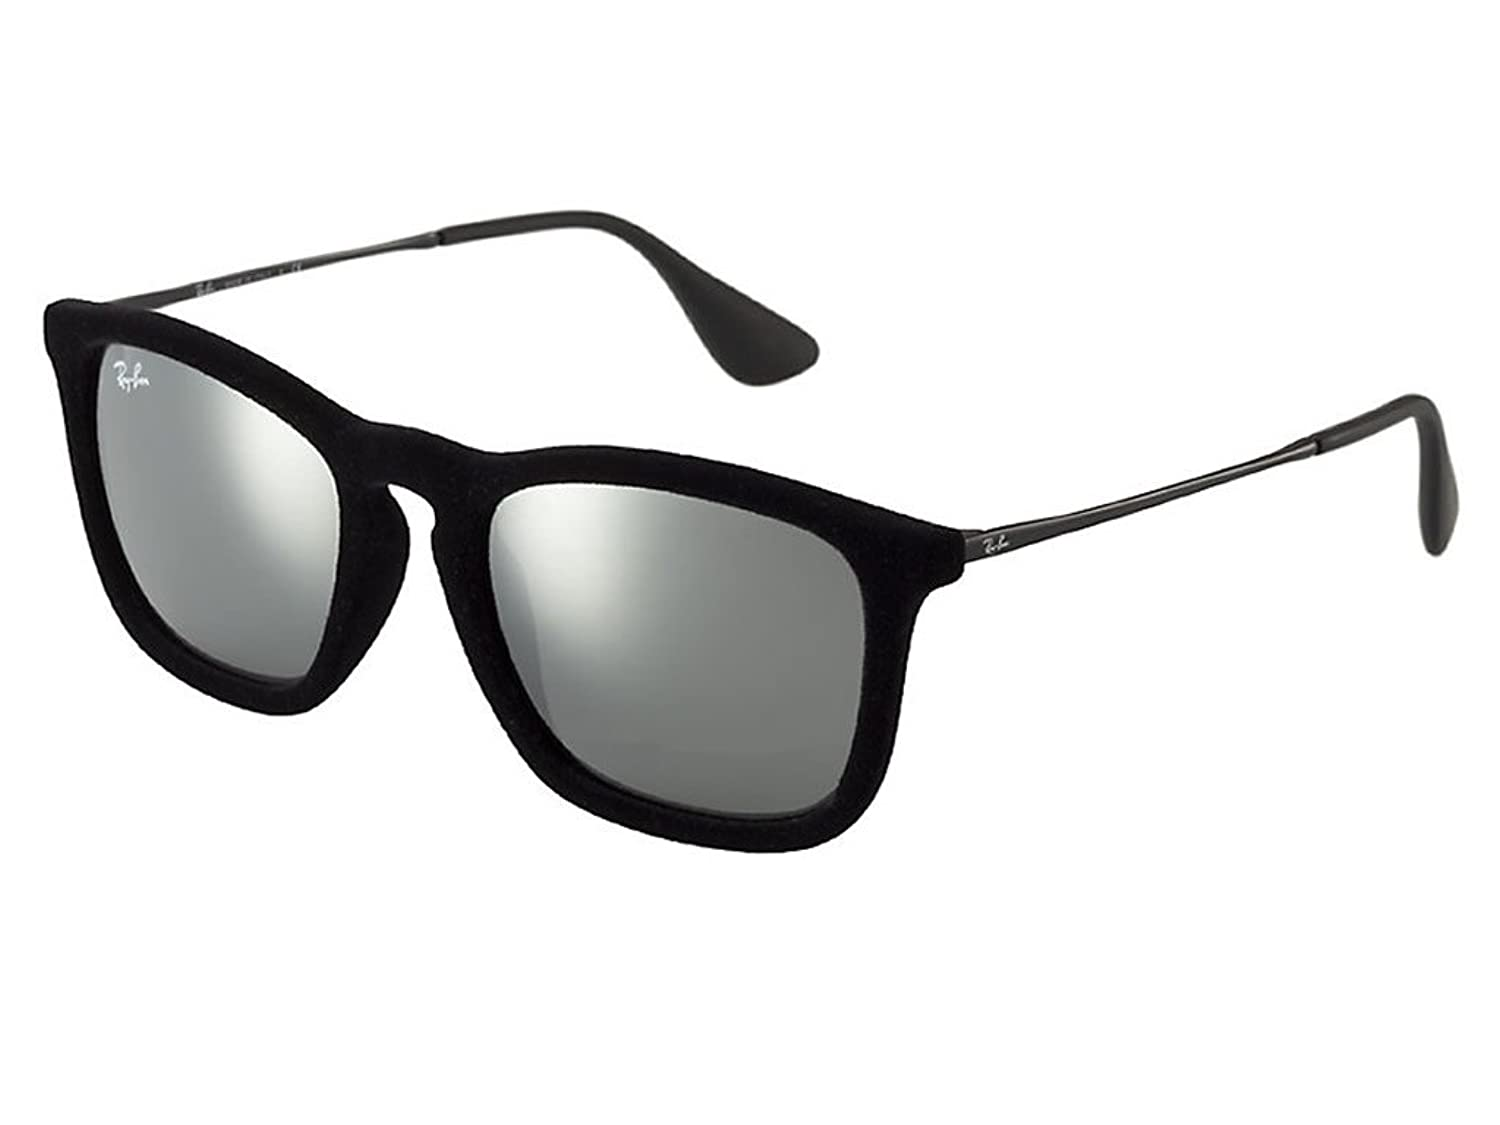 ray ban sunglasses sale kuwait holly 39 s restaurant and pub. Black Bedroom Furniture Sets. Home Design Ideas